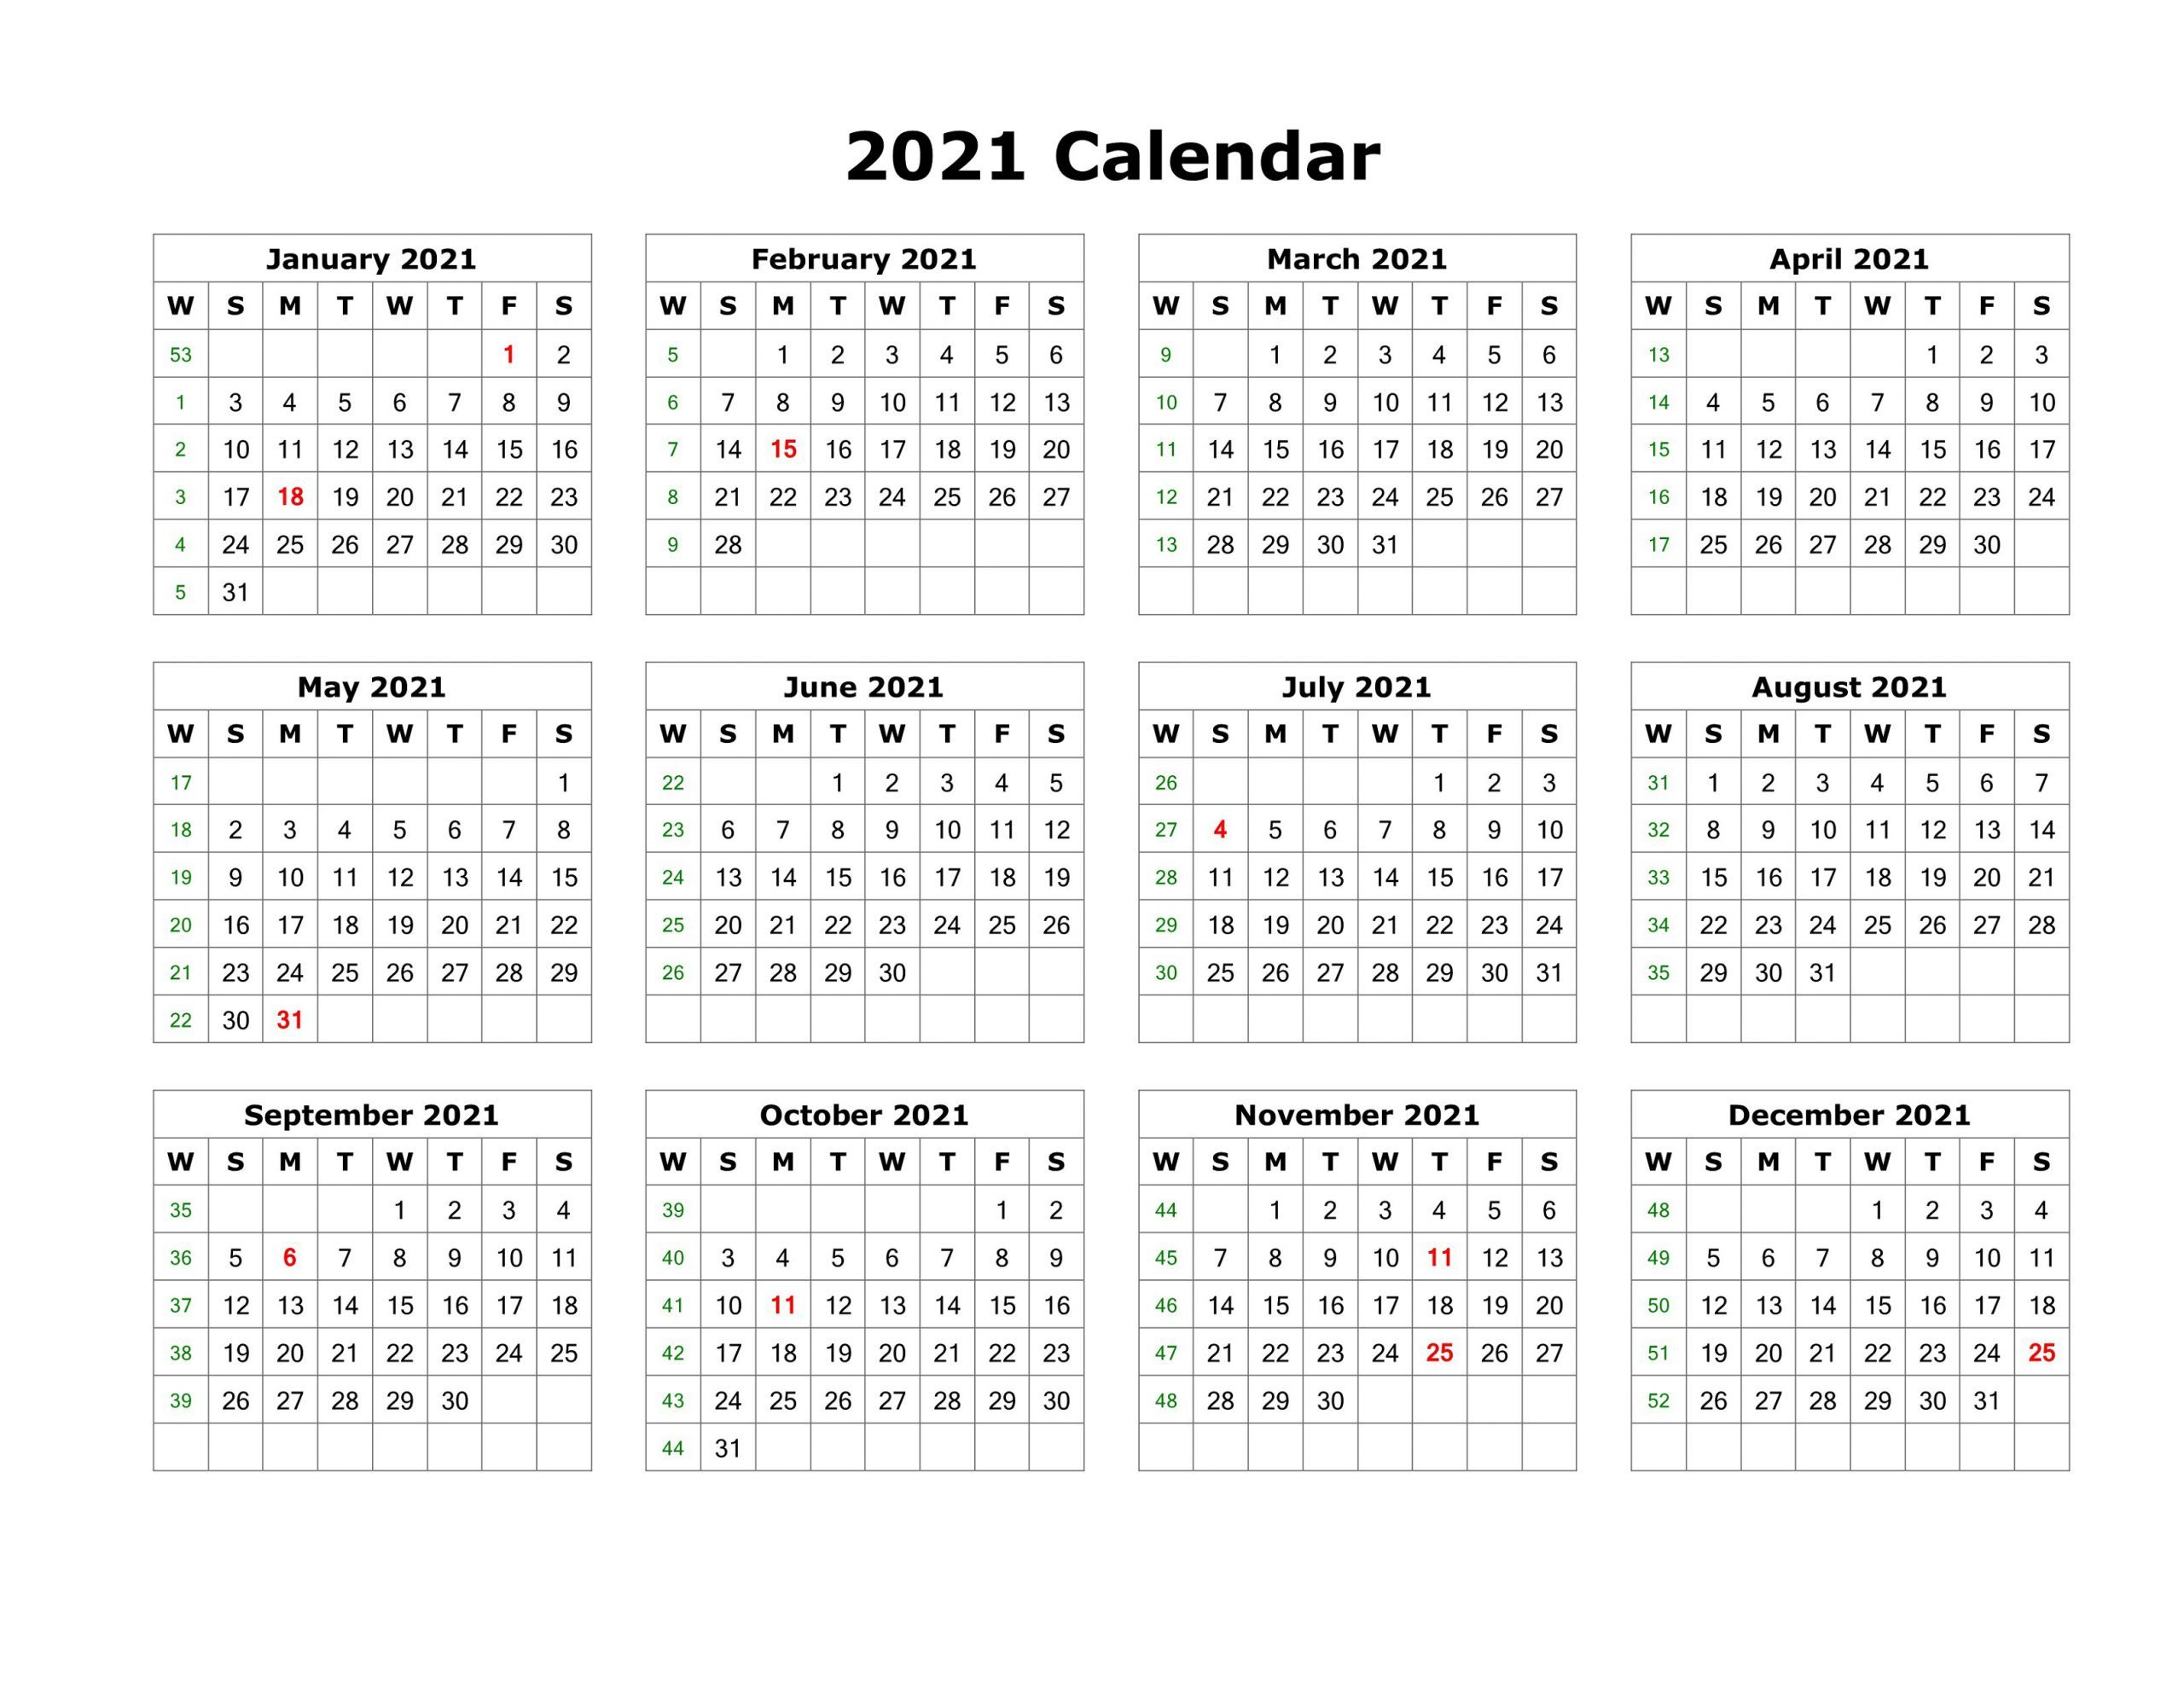 Blank Calendar Template Word 2021 Various Months In 2020 pertaining to Fill In 2021 Calendar Pages Blank